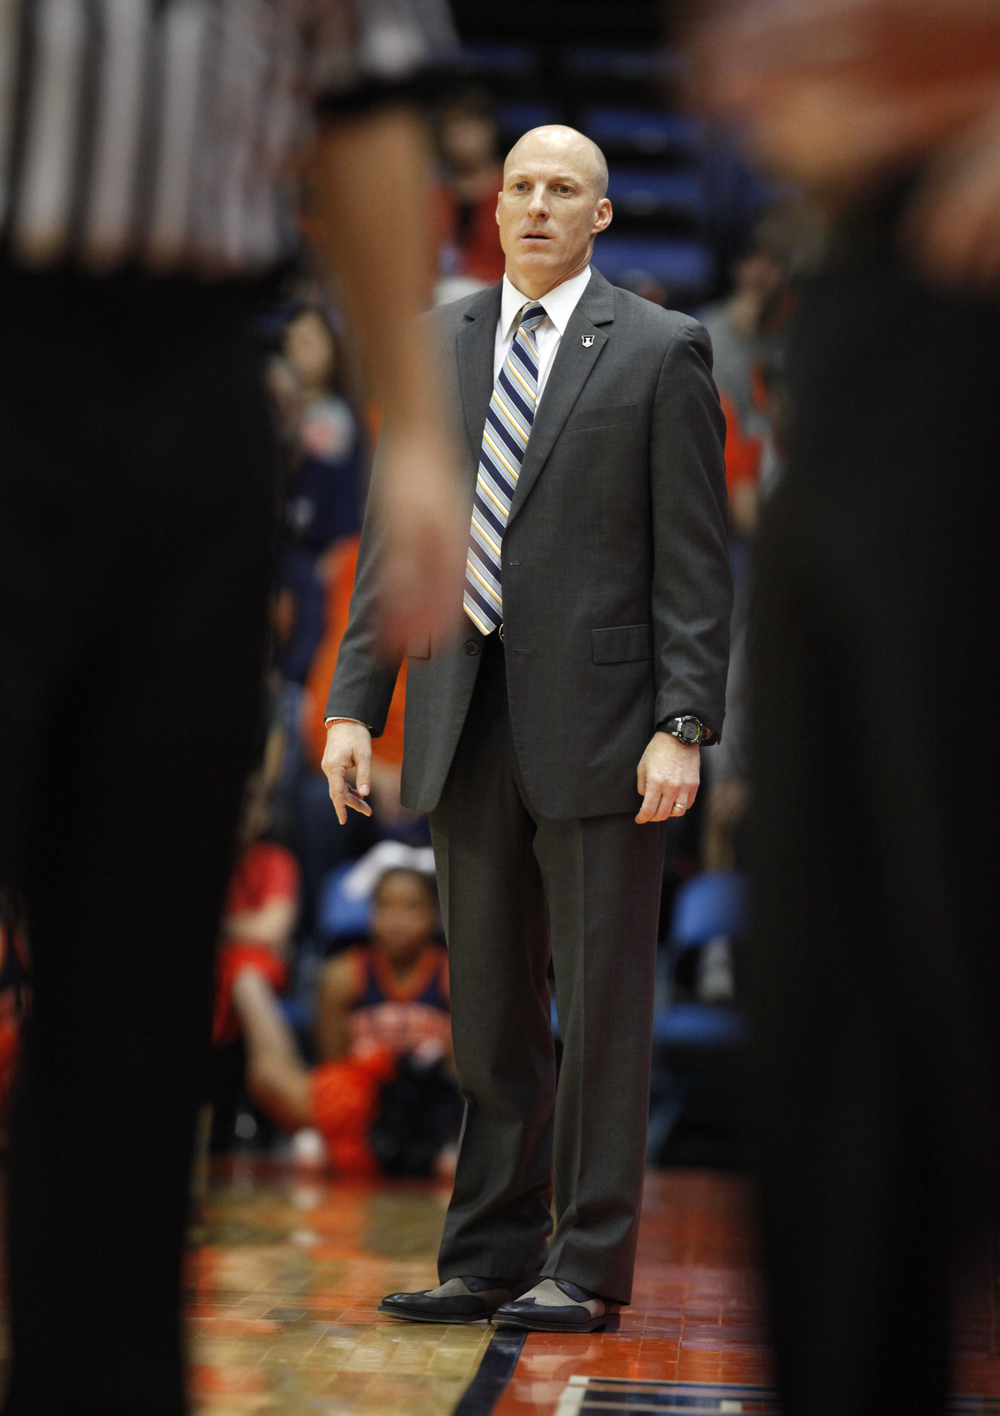 University of Illinois men's basketball coach John Groce watches as his team takes on North Dakota State University during the first half at the Prairie Capital Convention Center, Sunday, Nov. 15, 2015, in Springfield, Ill. Justin L. Fowler/The State Journal-Register